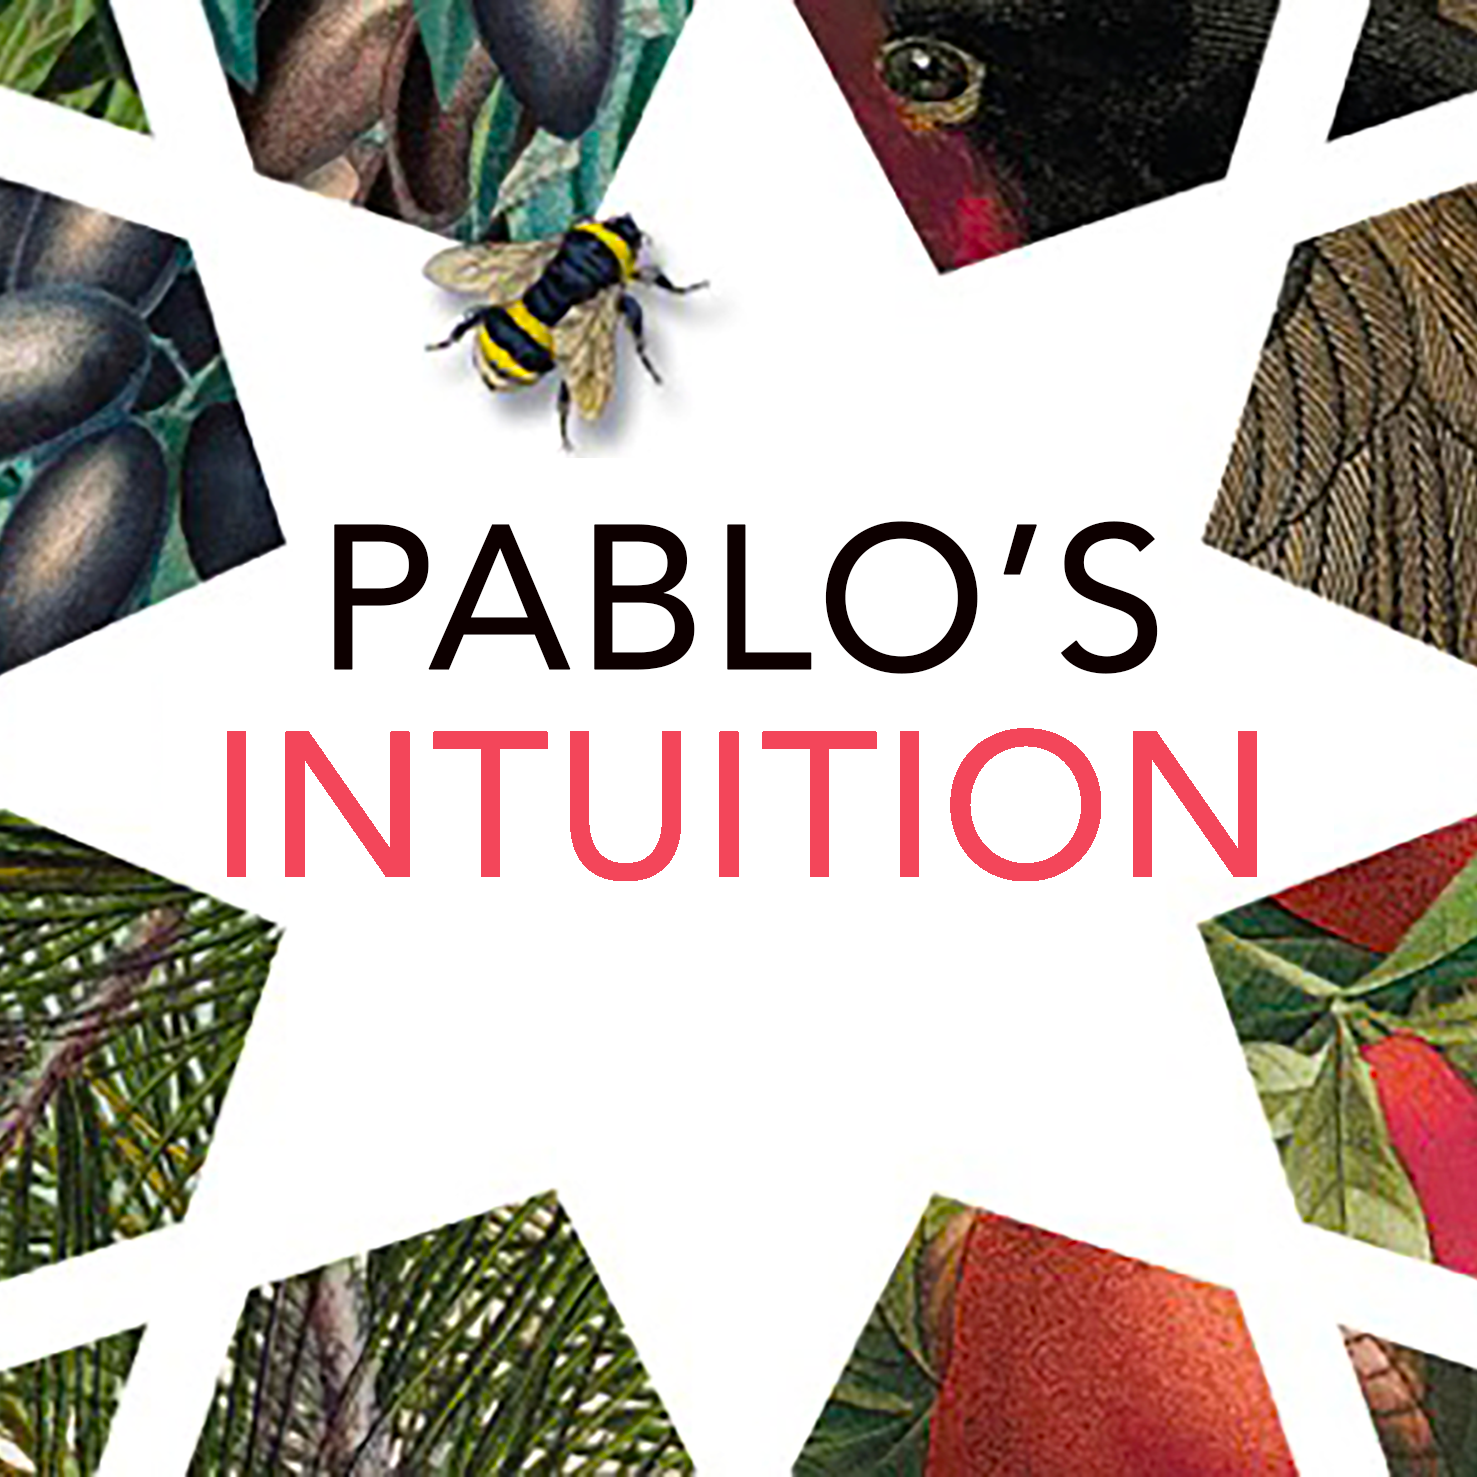 06 Pablo's Intuition: One Step at a Time — Matthew Félix